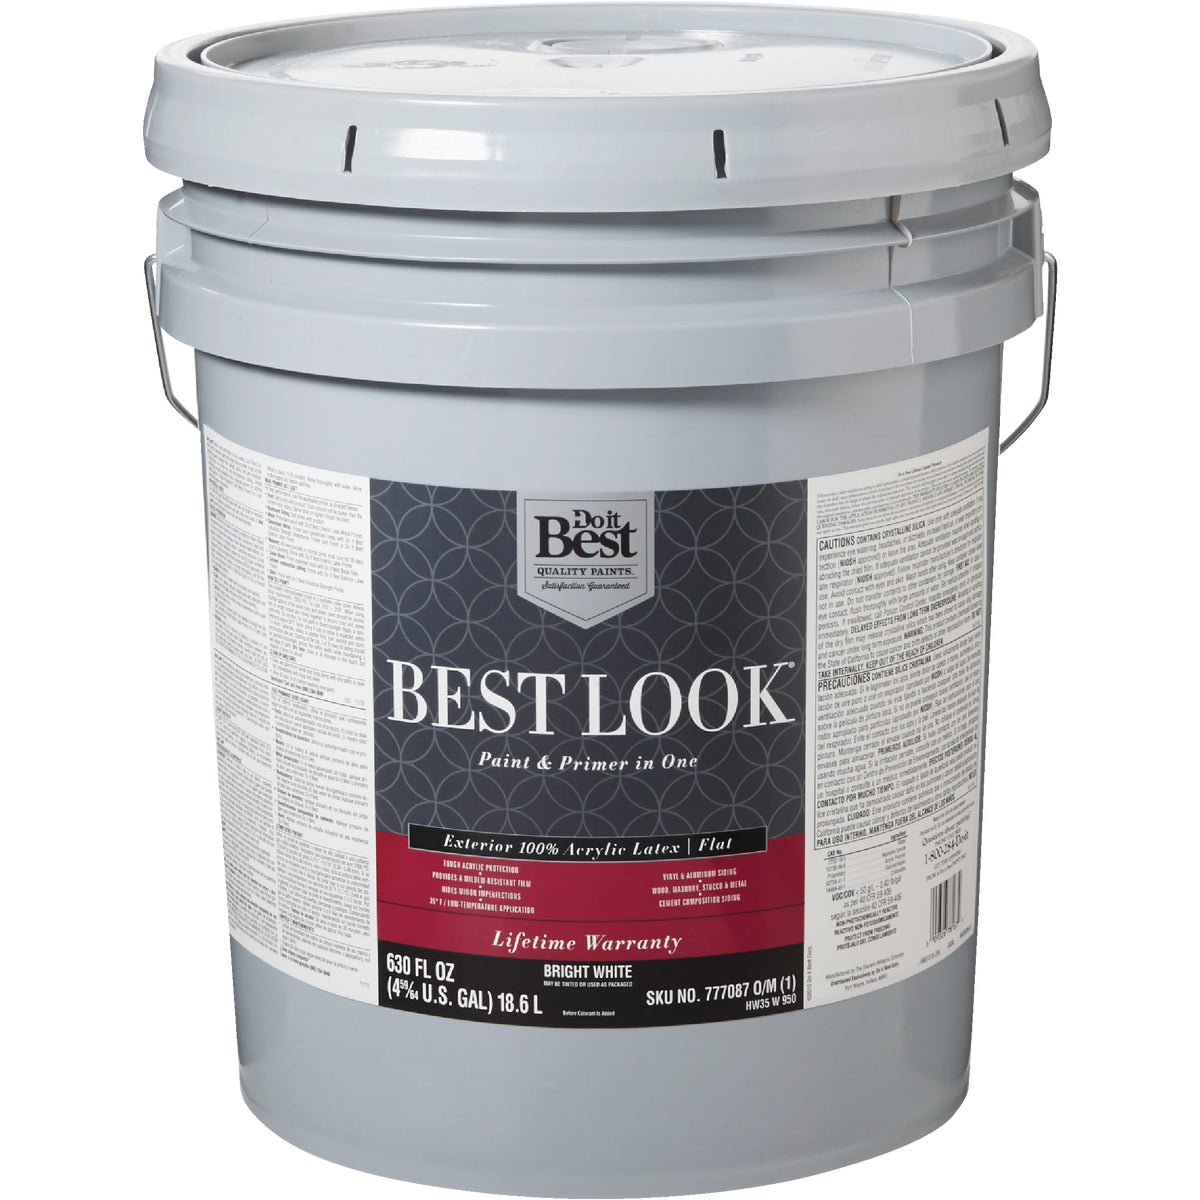 EXT FLT BRIGHT WHT PAINT - HW35W0950-20 by Do it Best